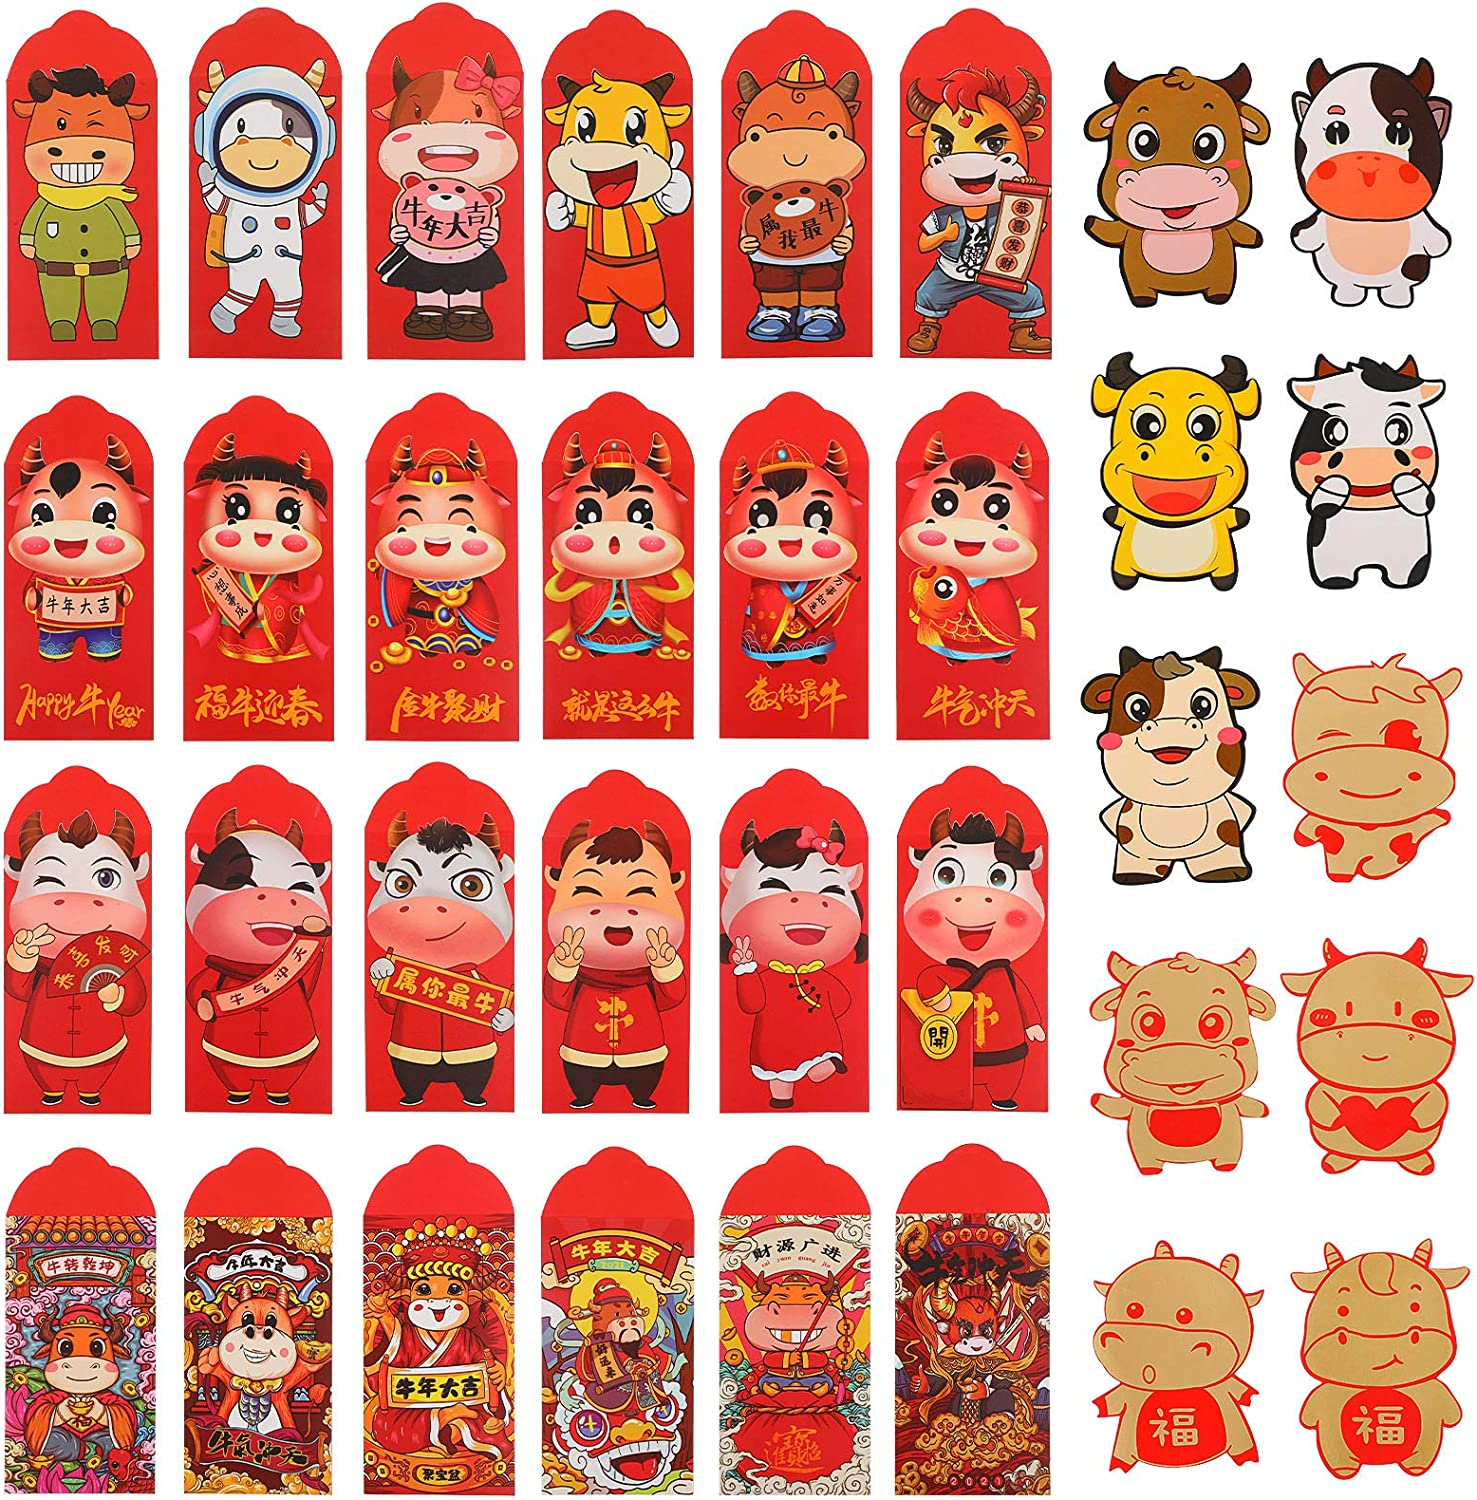 34 Pieces Same day shipping Safety and trust Chinese New Year 2021 Zodiac OX Red Envelopes